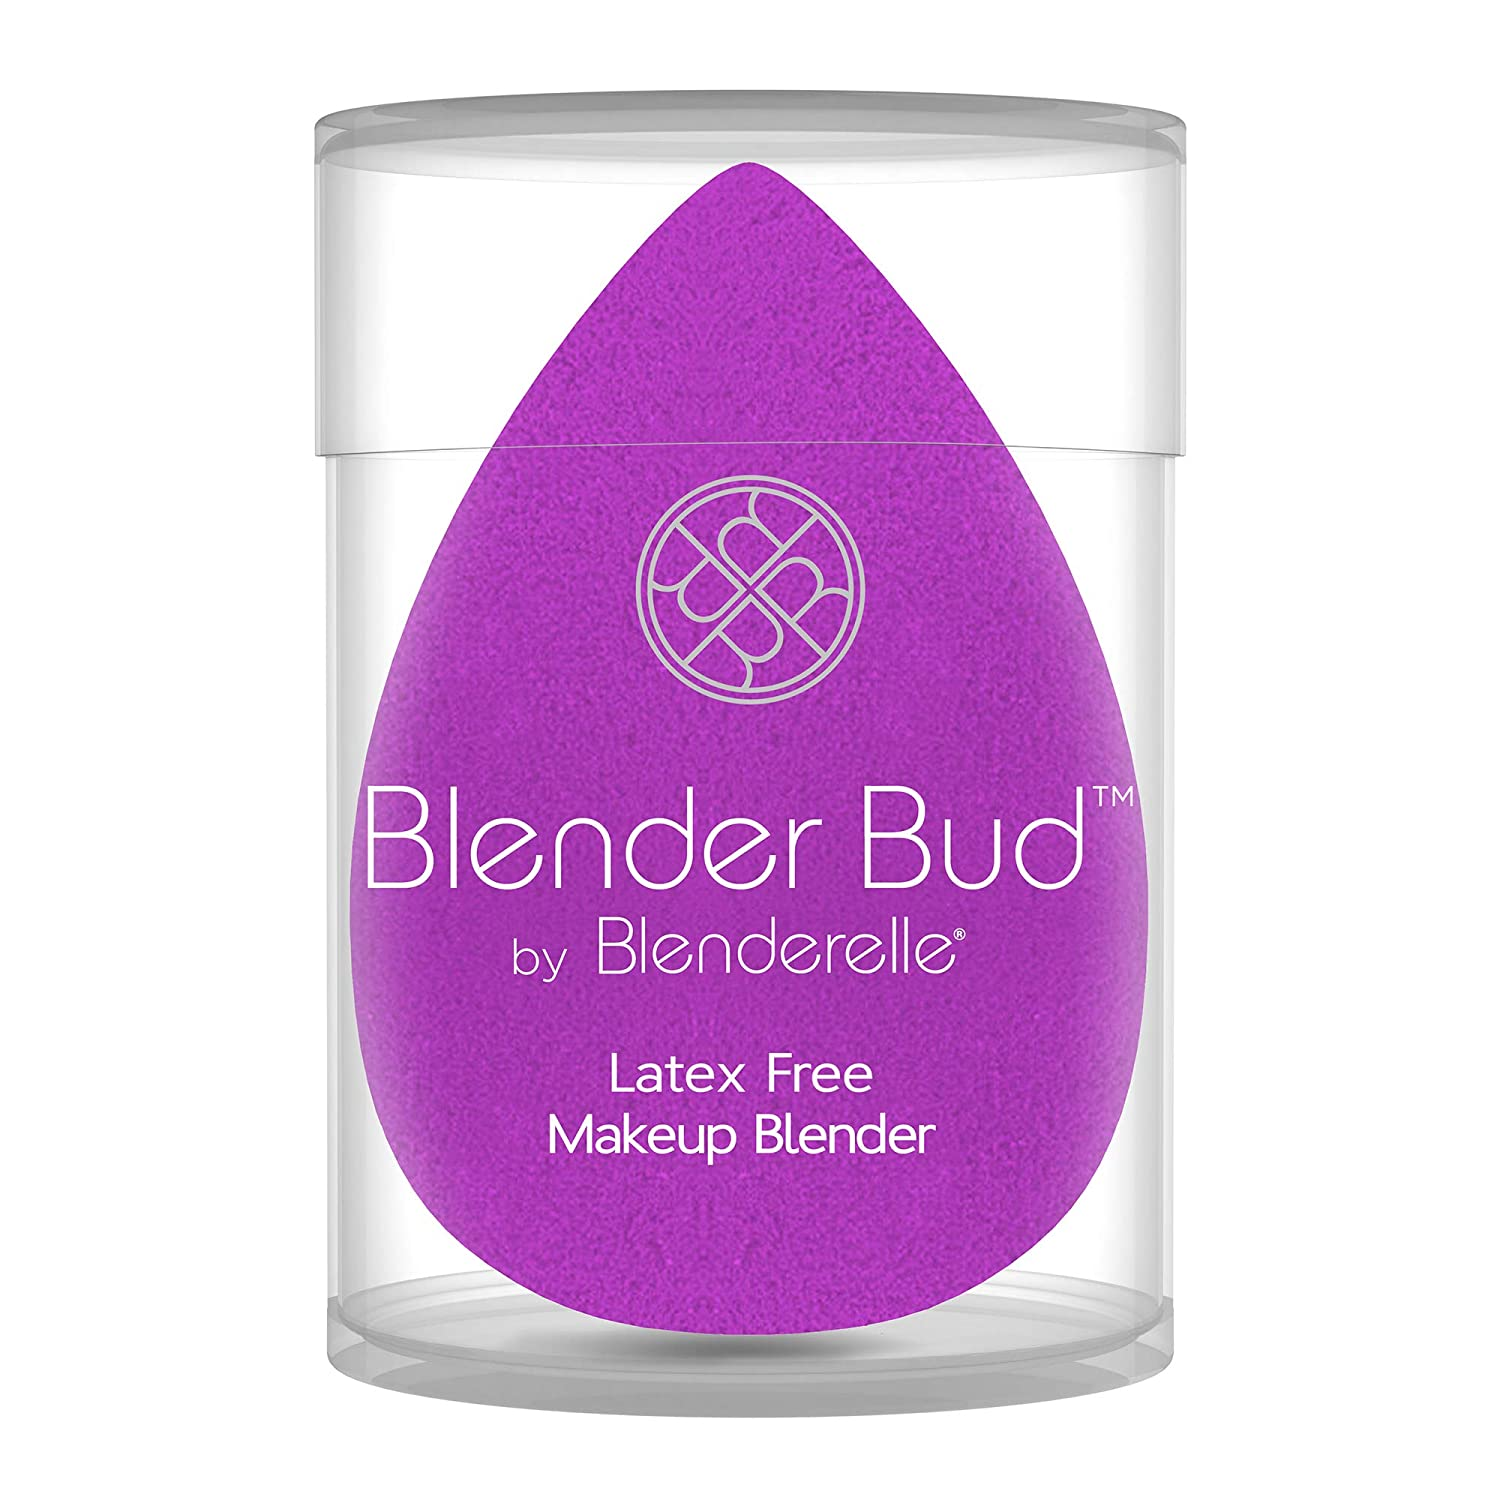 Blender Bud Makeup blender sponge airbrush finish latex free super soft (Purple)